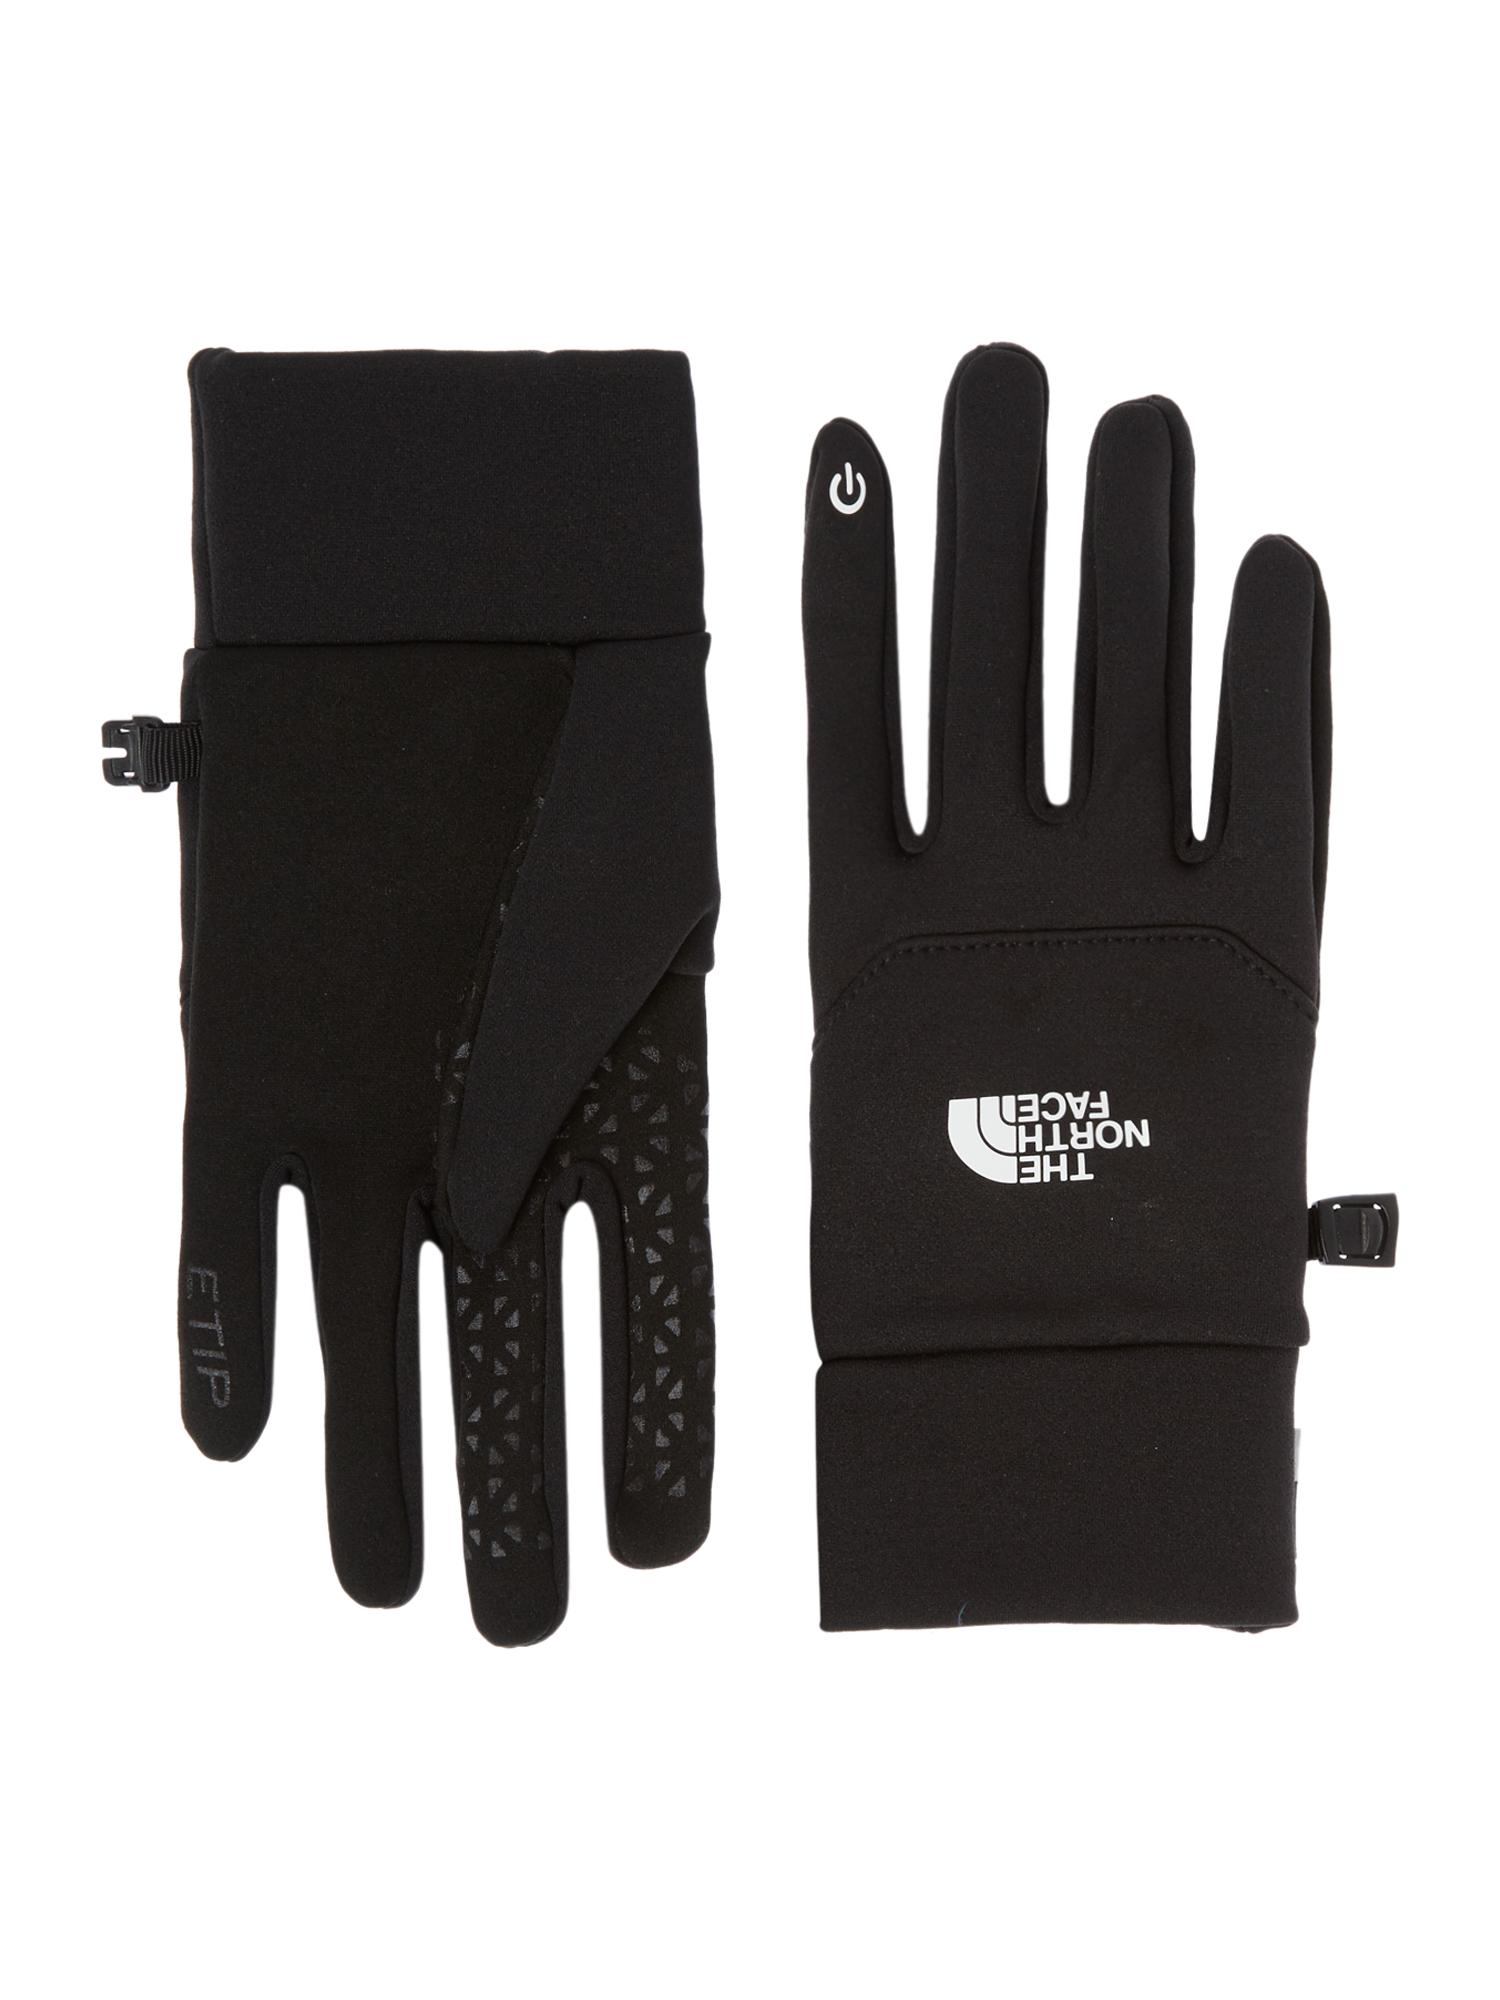 Mens gloves for driving - The North Face Etip Gloves